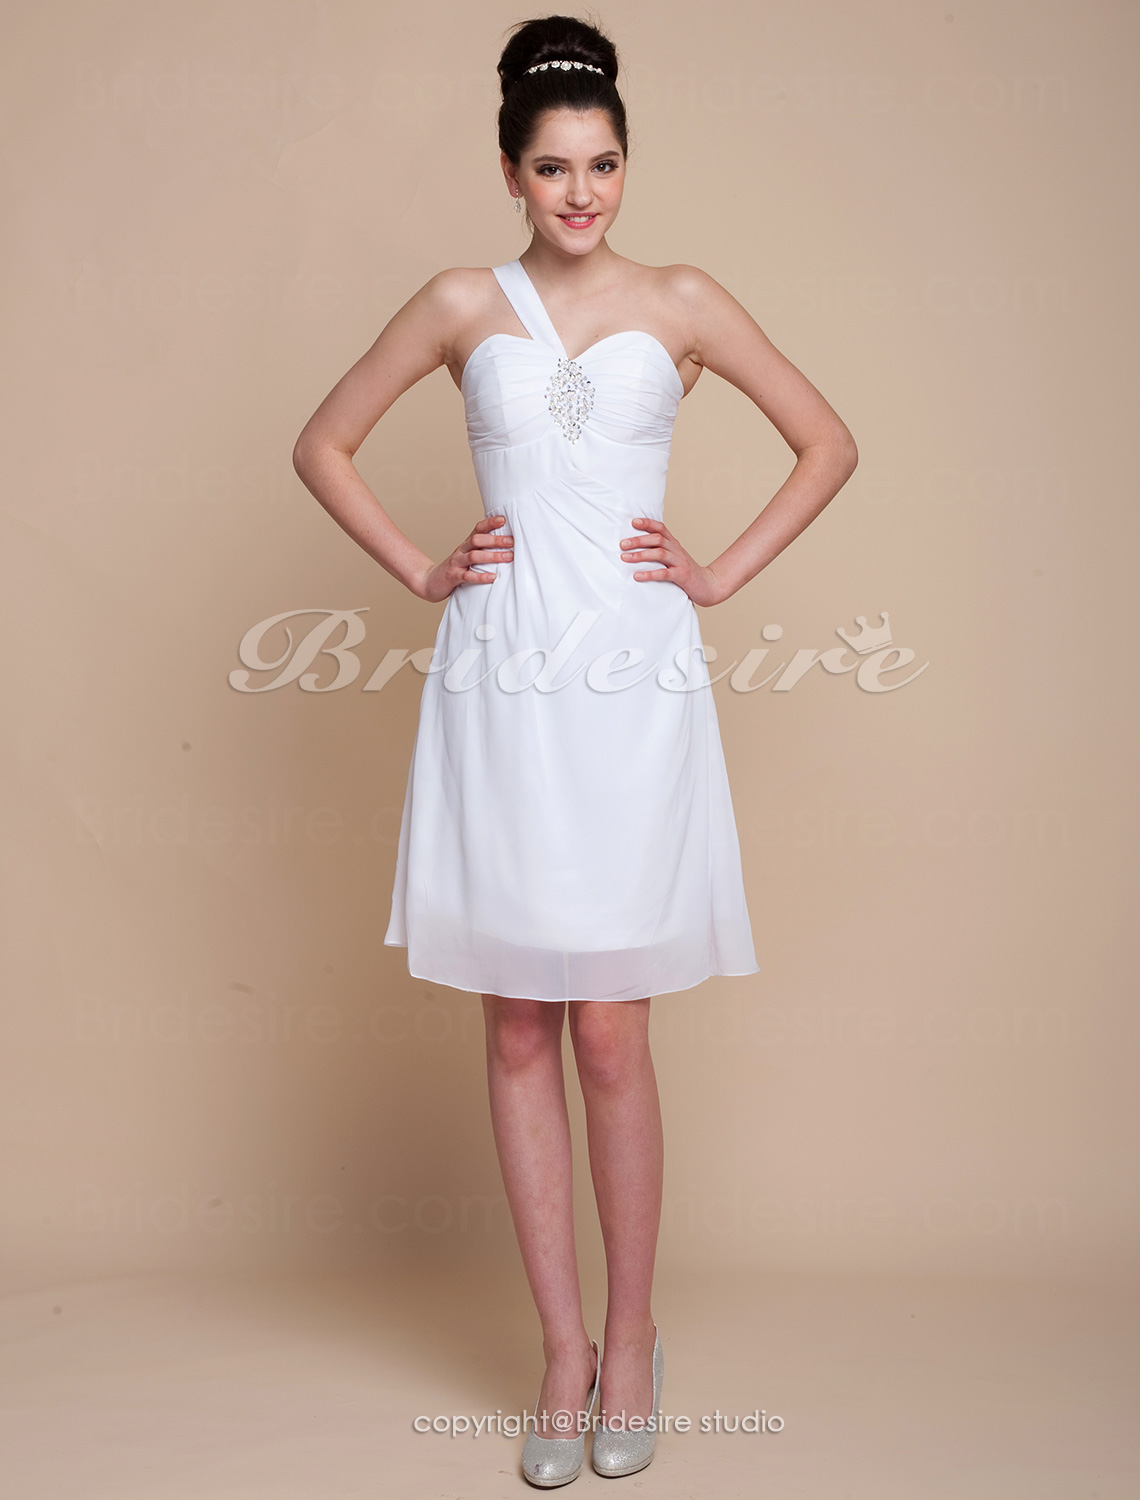 A-line Satin And Chiffon Short/Mini One Shoulder Sweetheart Bridesmaid Dress